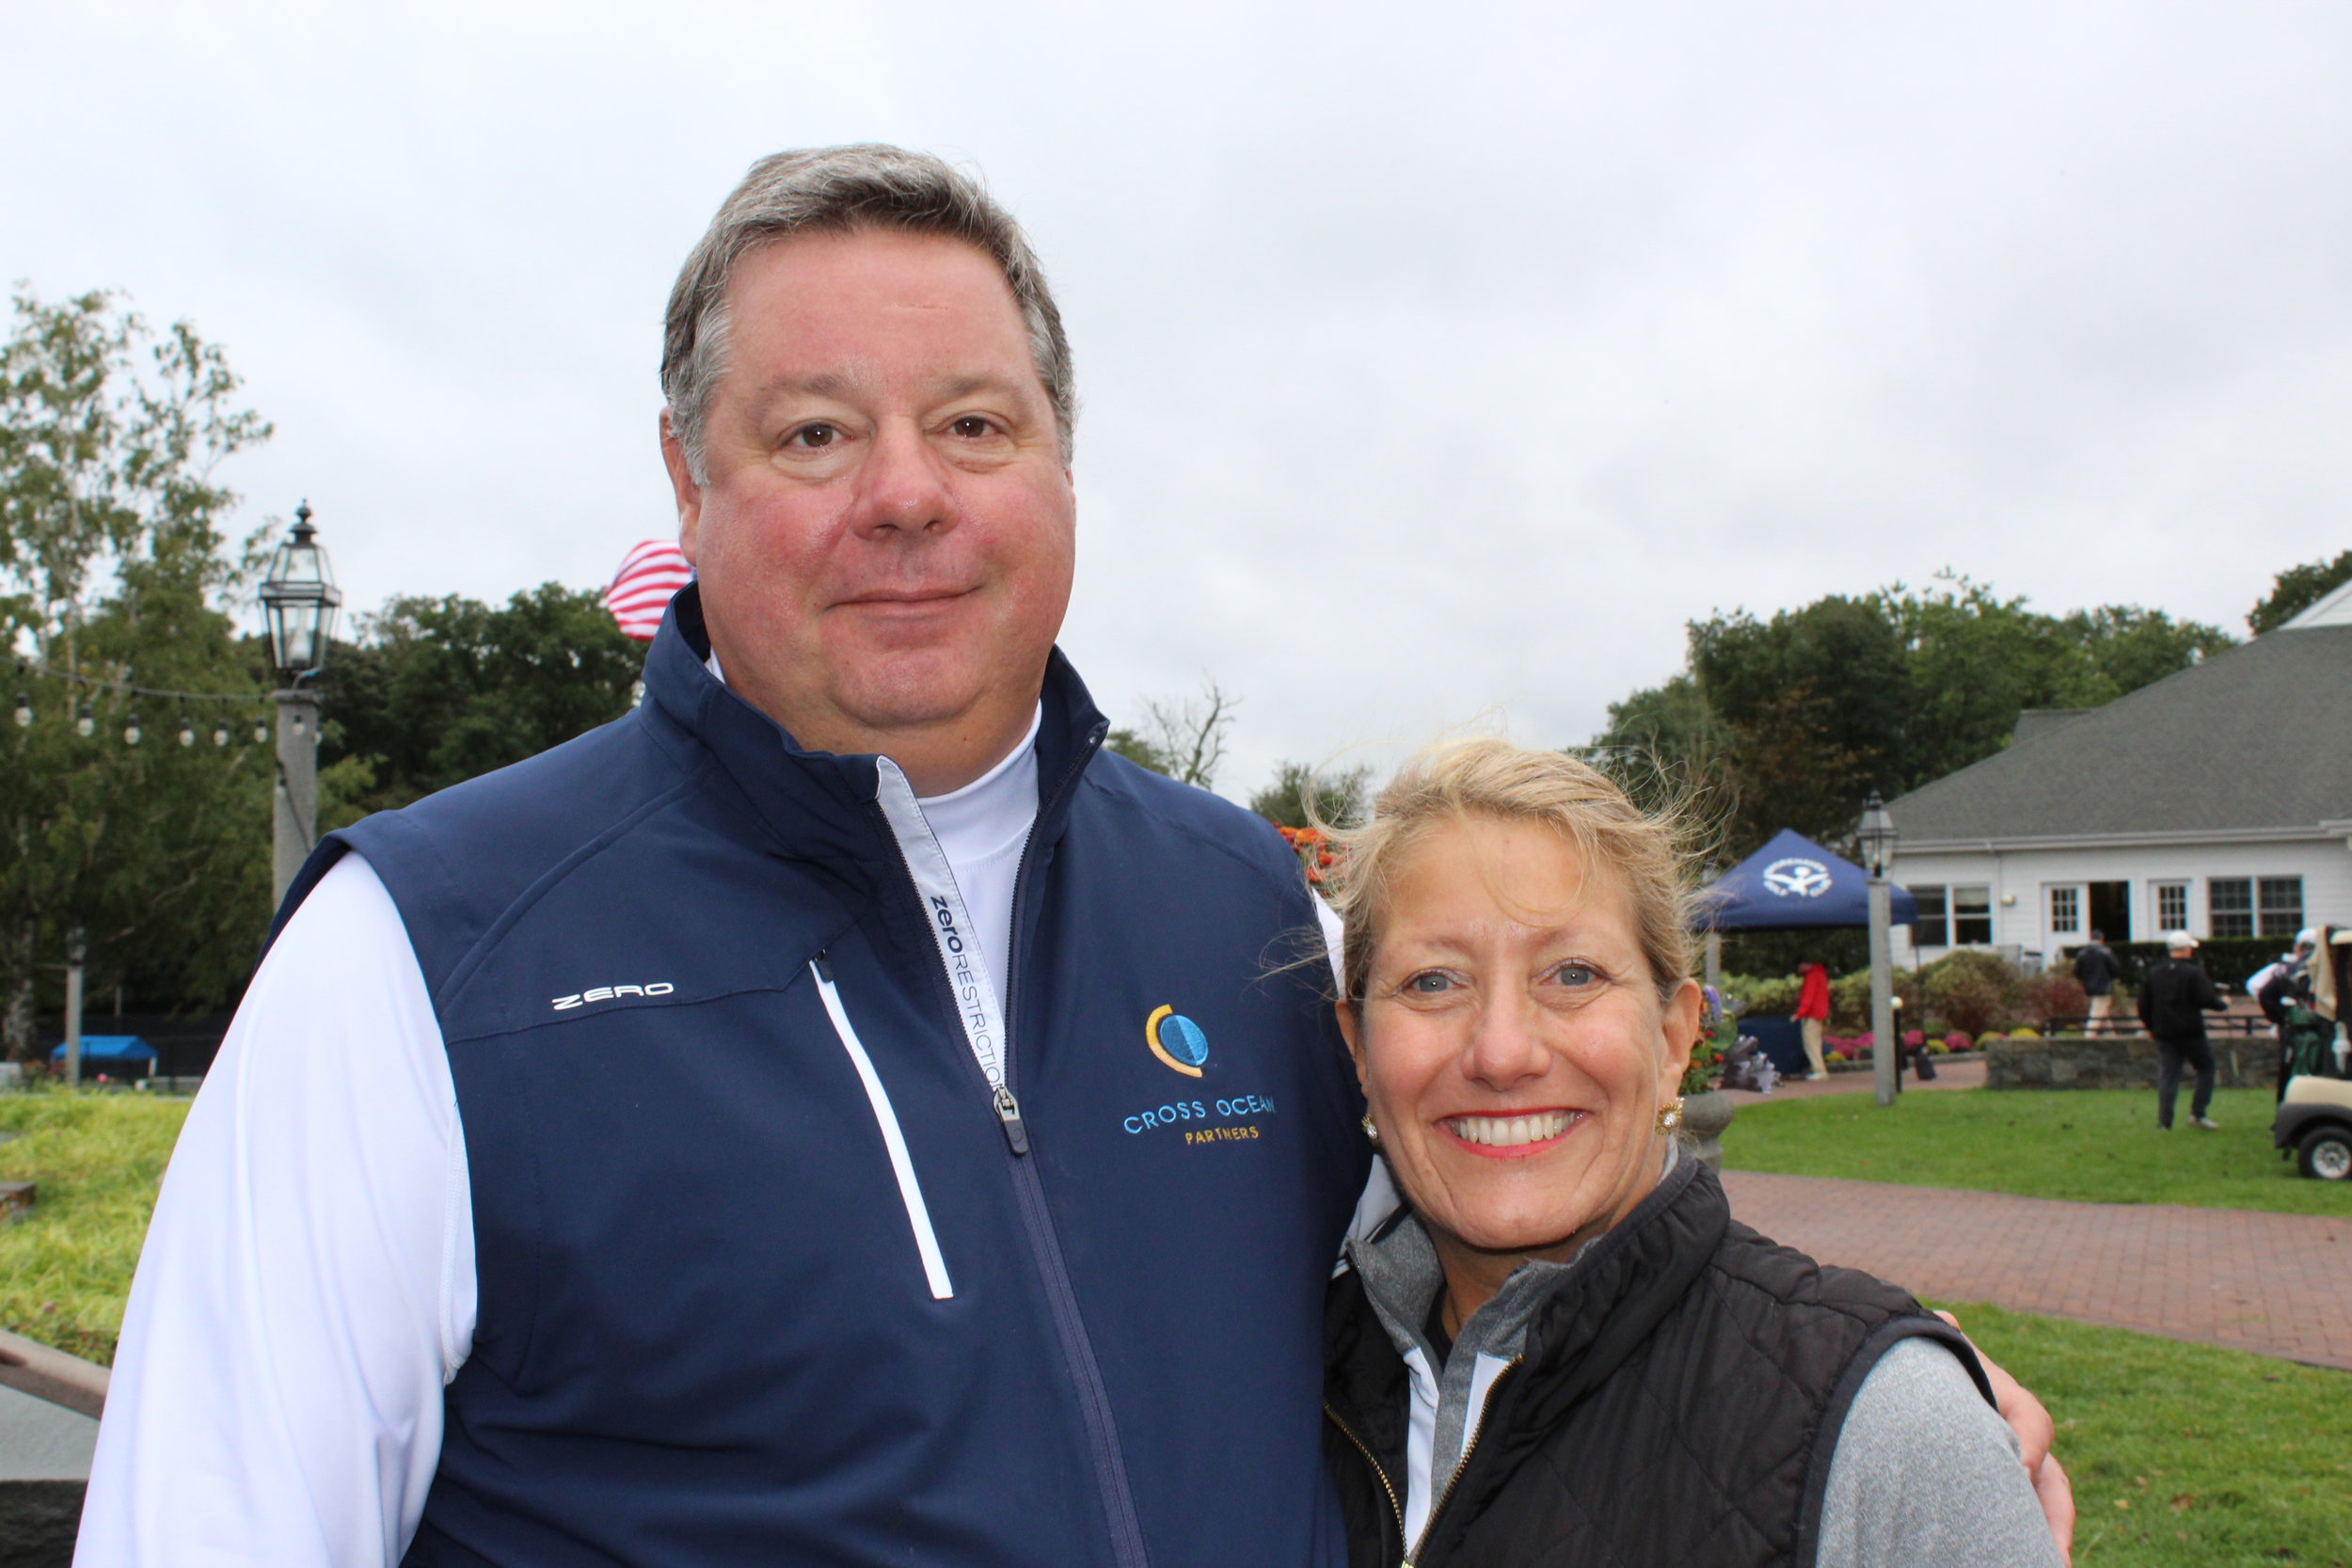 Event committee members, Michael Gregorich and Carol Howe